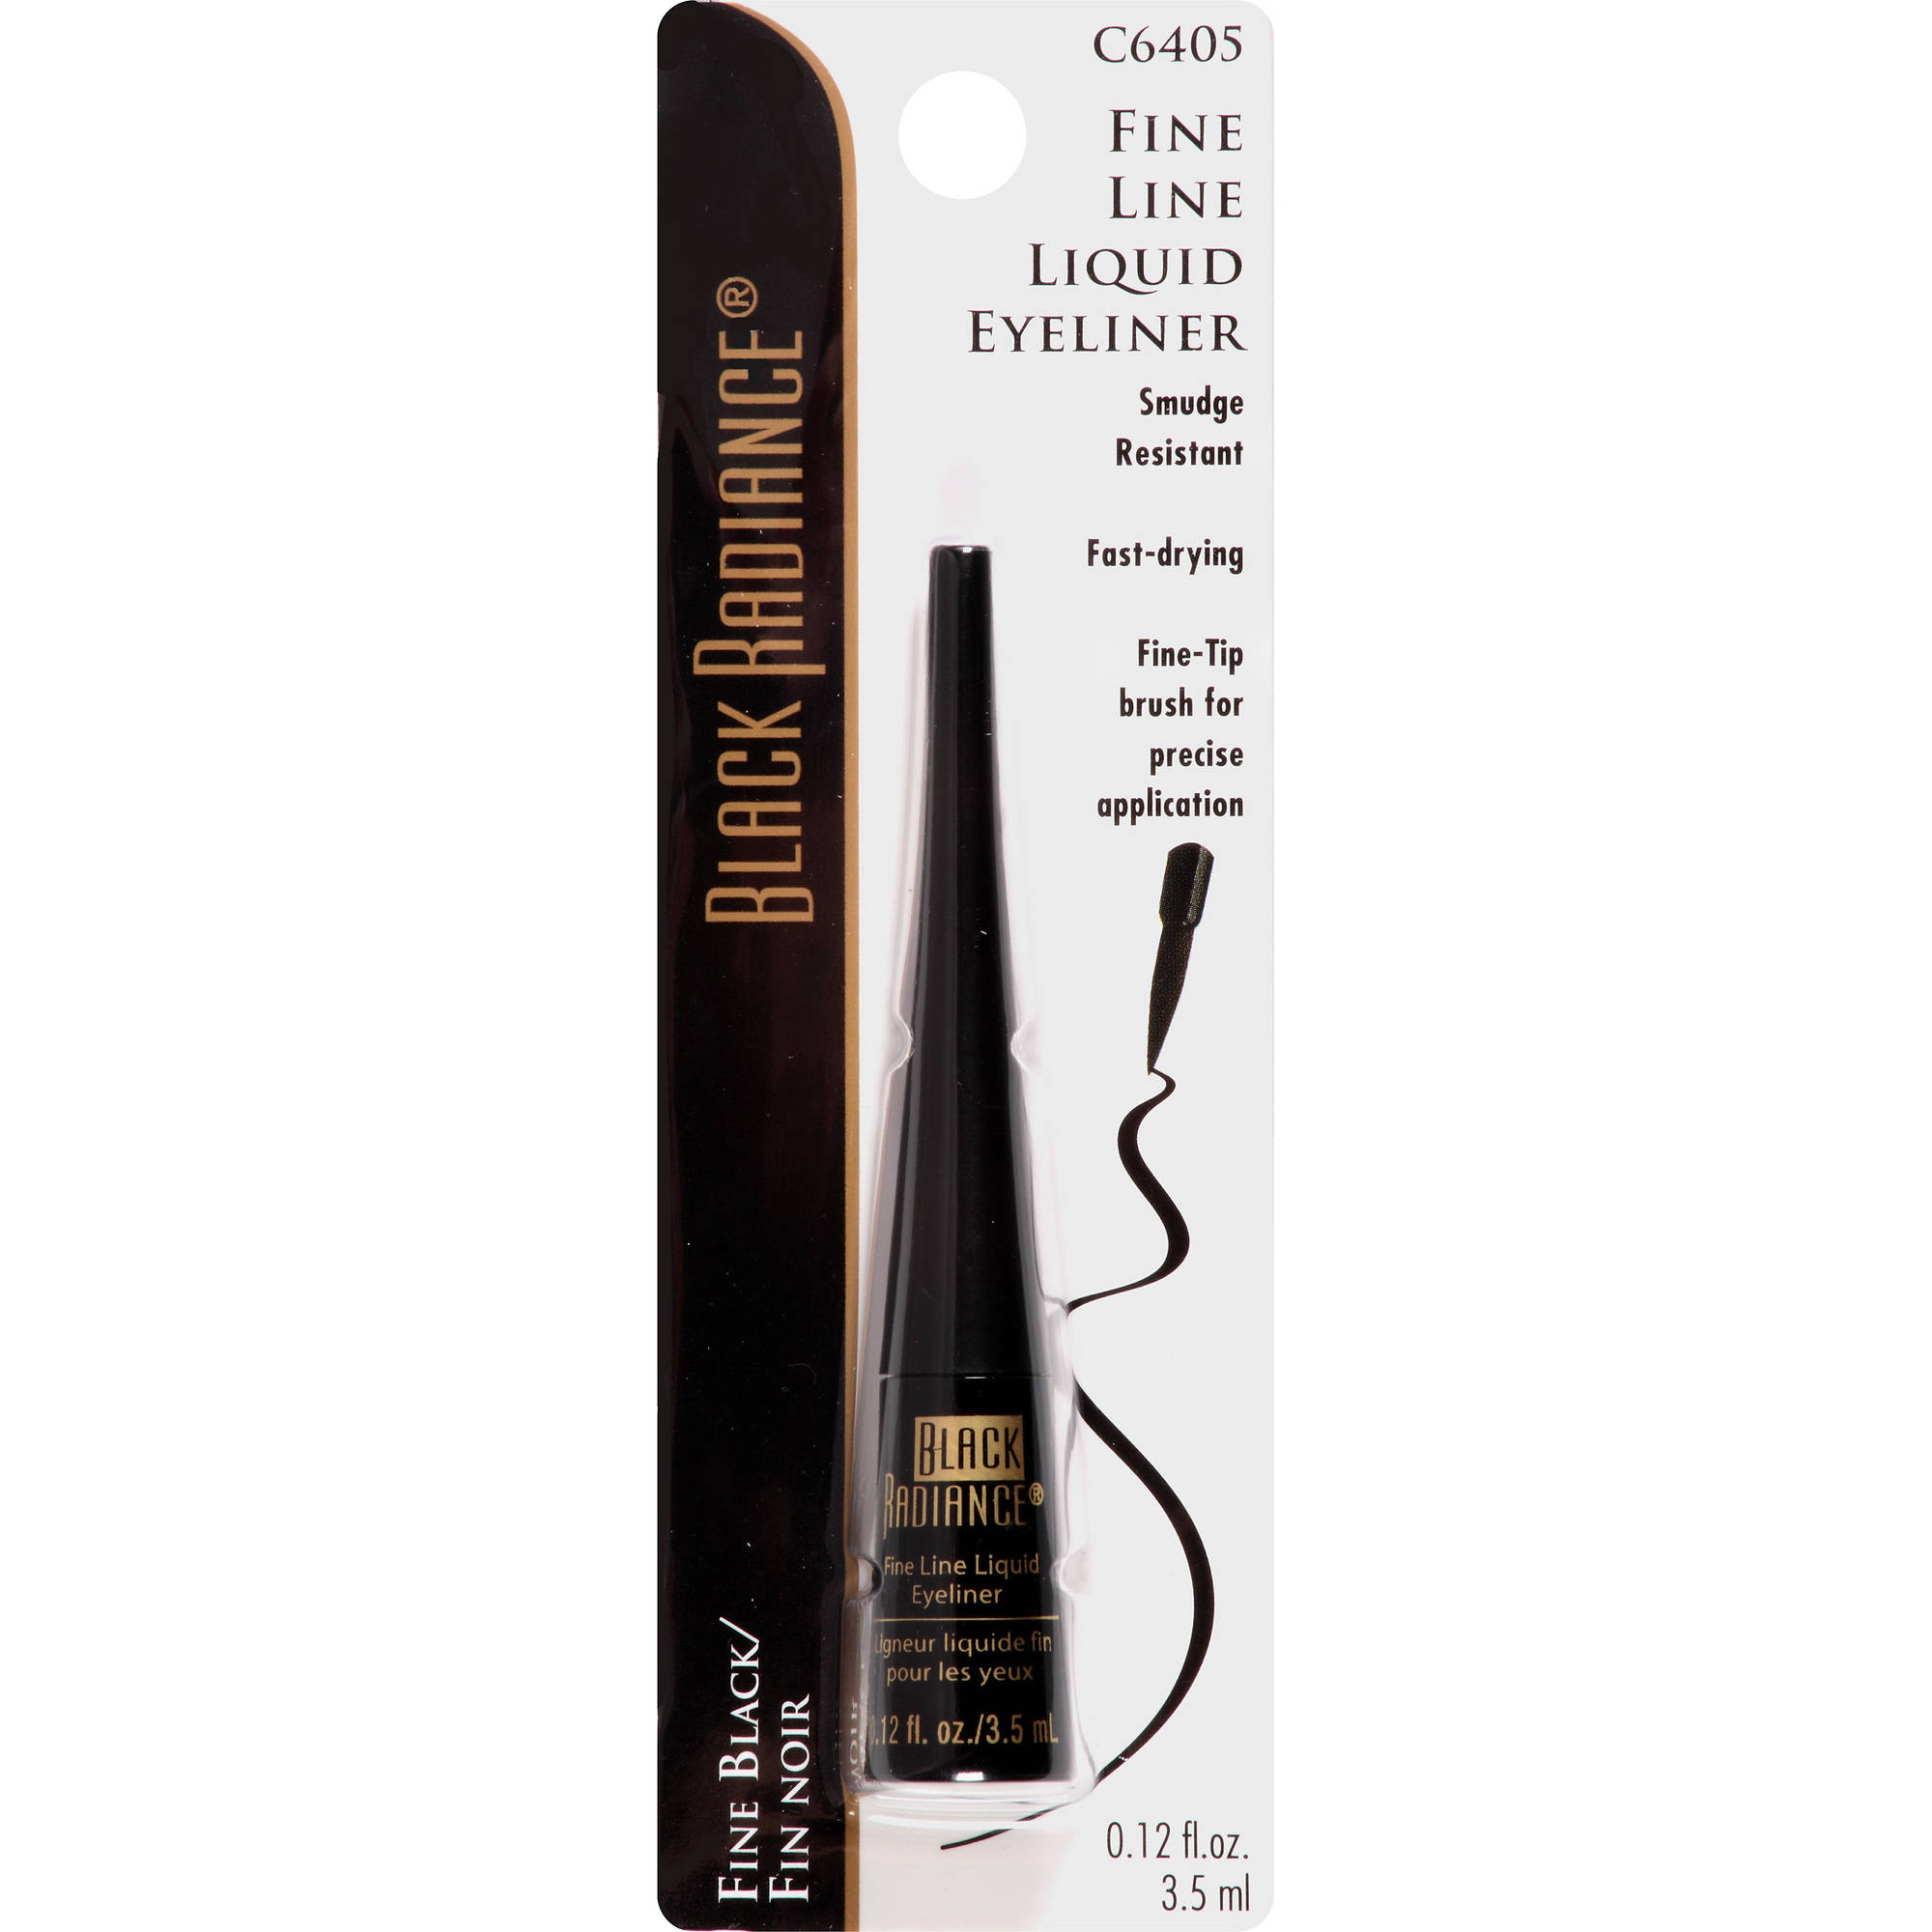 Maybelline Big Eyes Mascara Review hd image